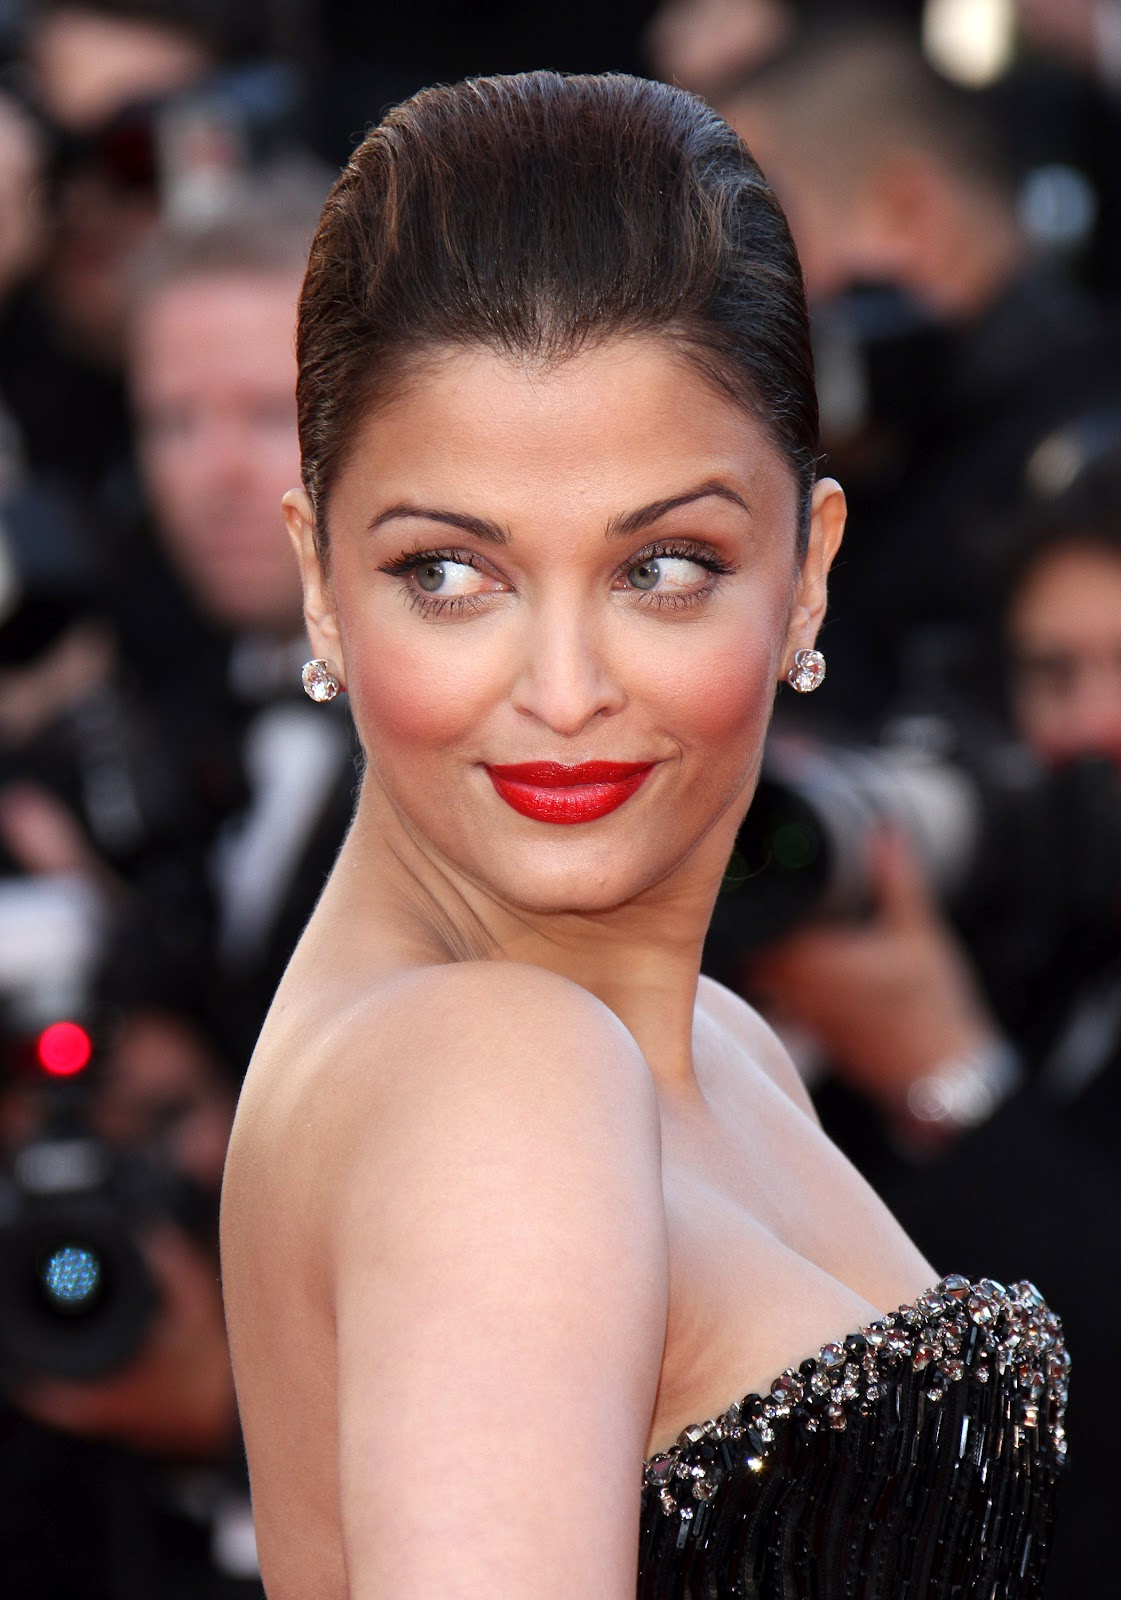 High Quality Bollywood Celebrity Pictures: Aishwarya Rai Showcasing Massive Cleavage in Black Dress